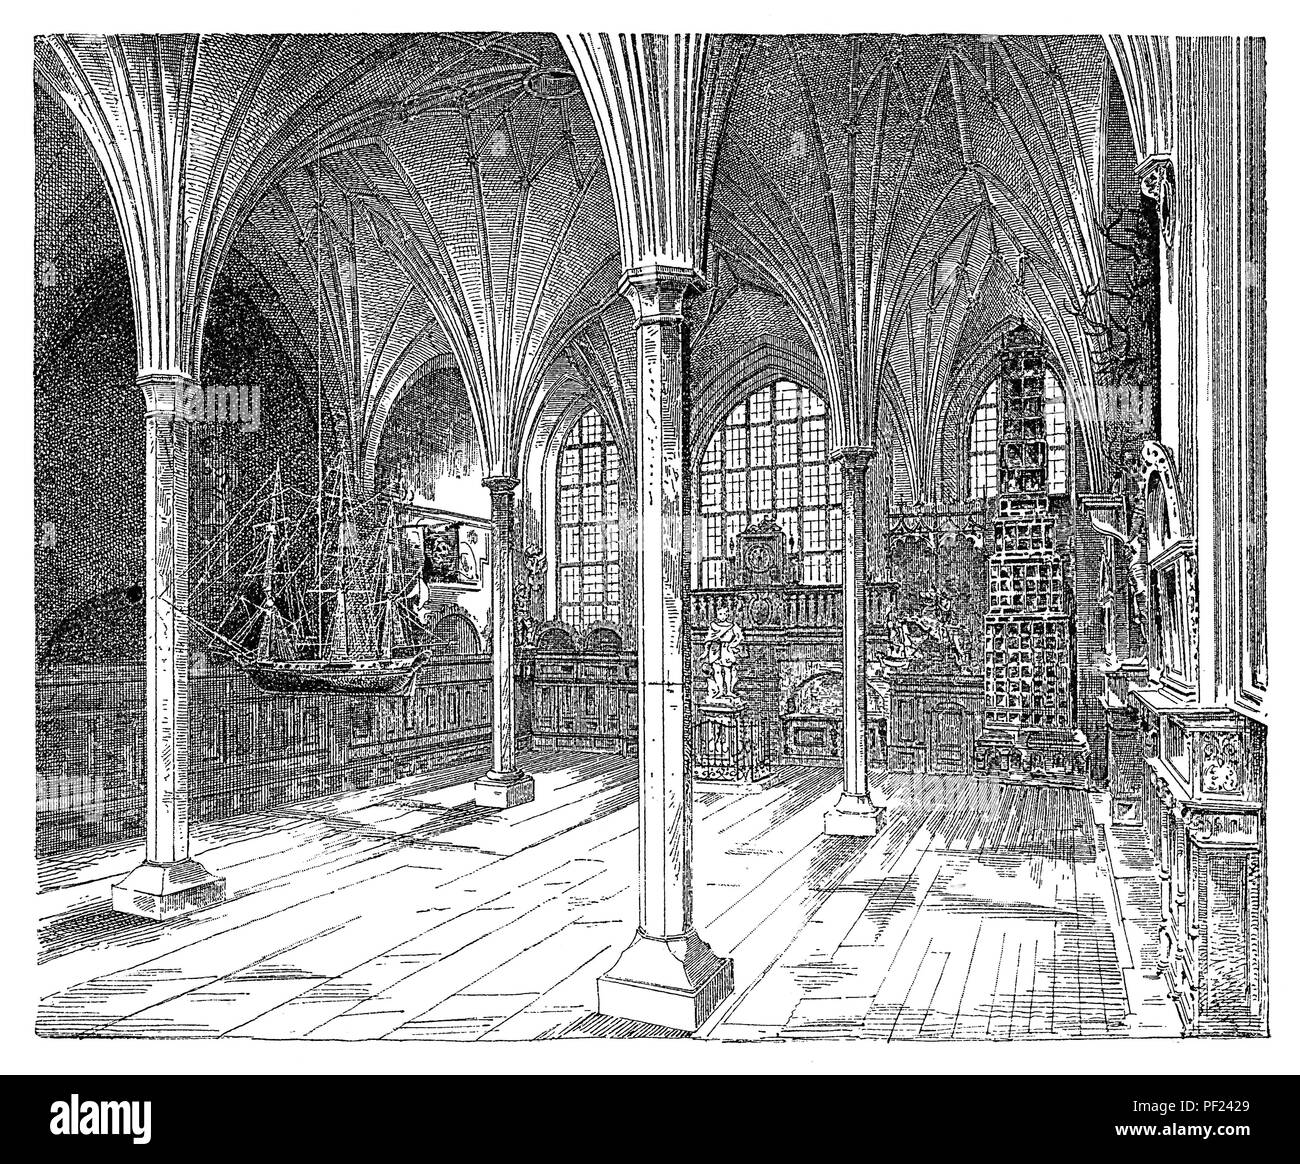 The gothic hall of  the Artus Court,  Gdańsk, Poland (German: Danzig), meeting place of merchants and a centre of social life. - Stock Image